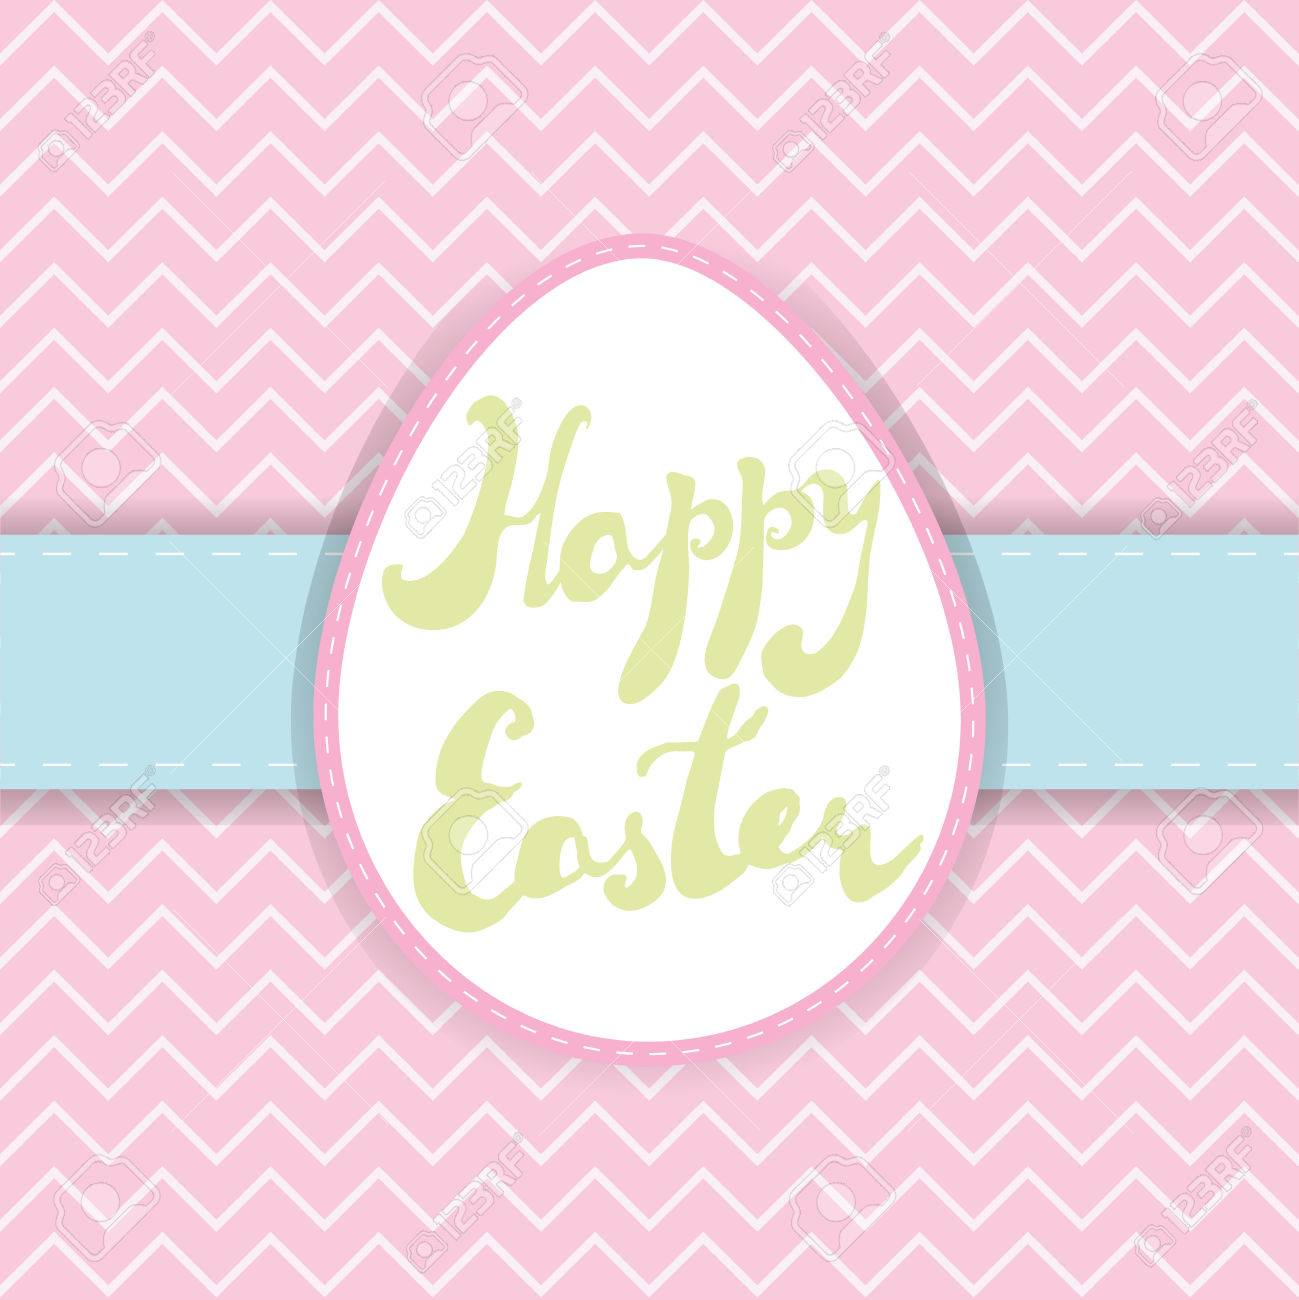 photograph regarding Happy Easter Printable identify Printable Easter greeting card. Handwritten words and phrases